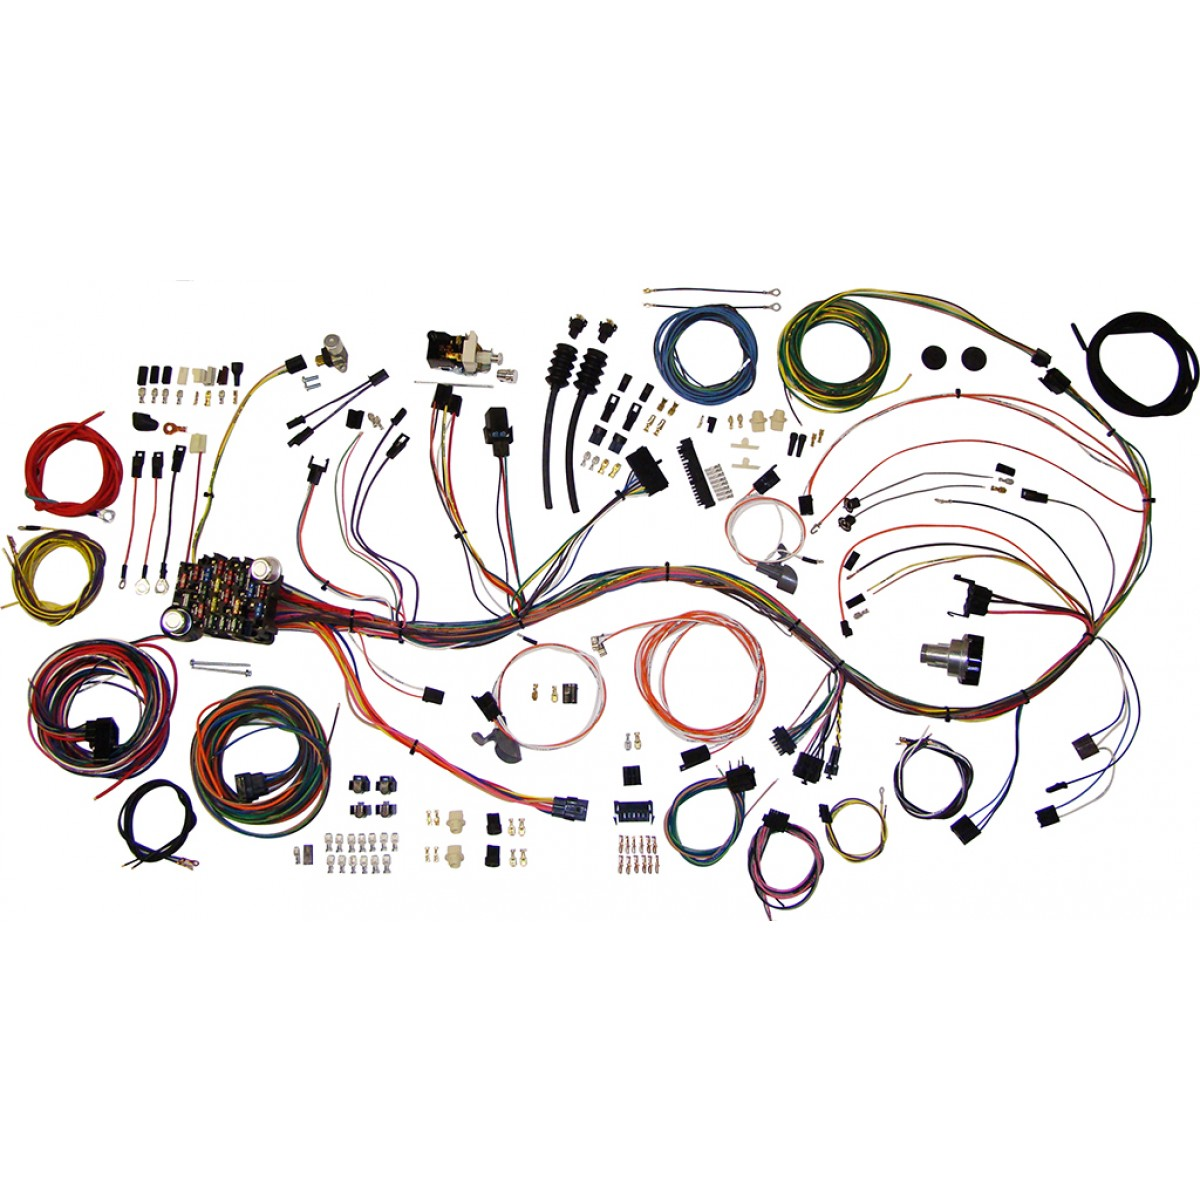 complete wiring harness kit 1969 1972 chevy truck part 510089 c10 c20 wire harness chevy c10 wiring harness electrical, dash wires, chevy truck 1964 c10 wiring harness at crackthecode.co